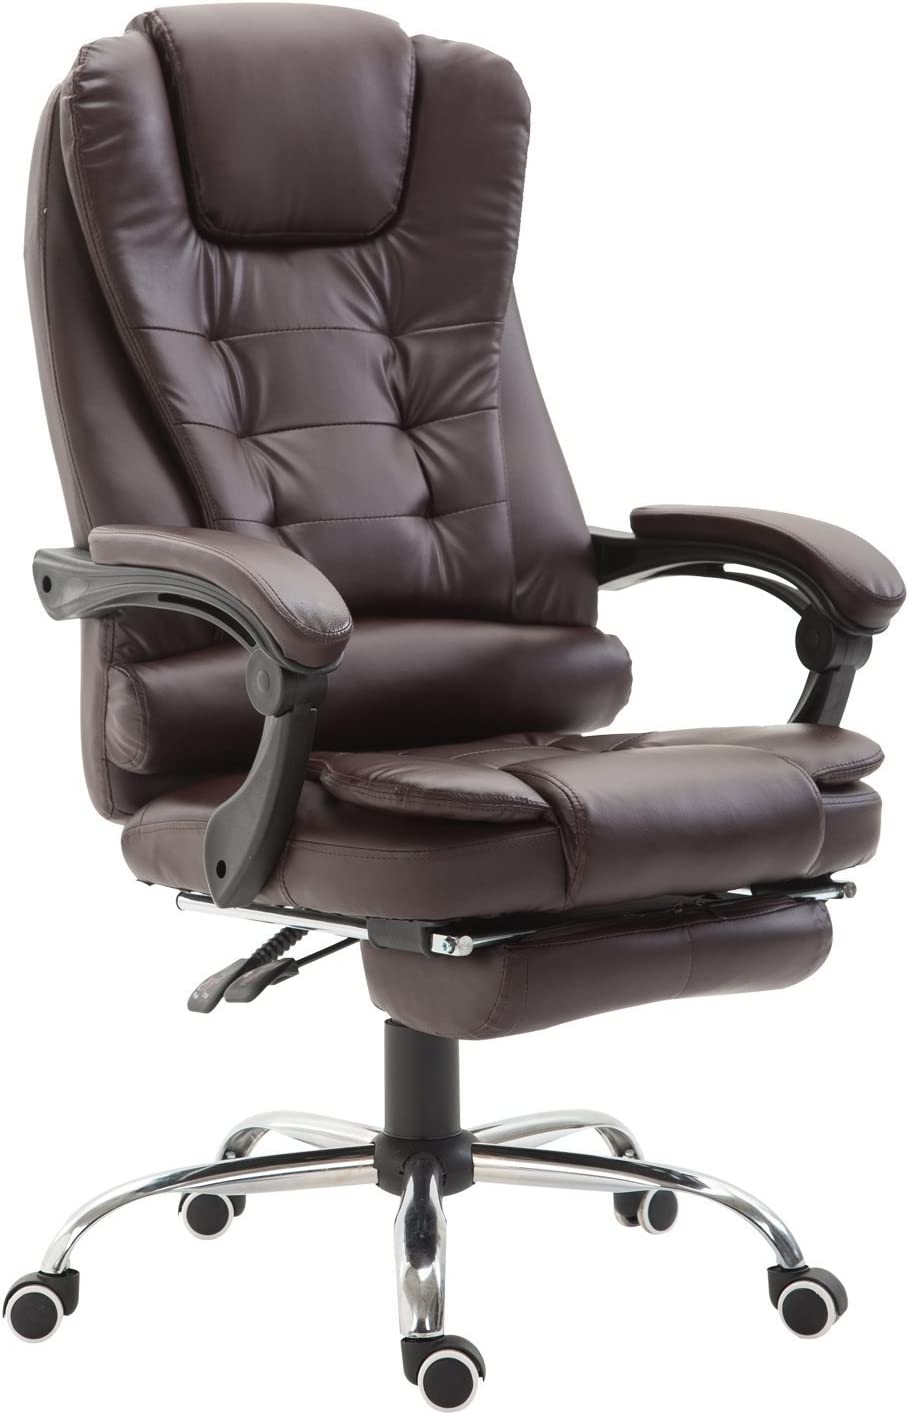 HomCom Reclining PU Leather Executive Home Office Chair with Footrest - Dark Brown